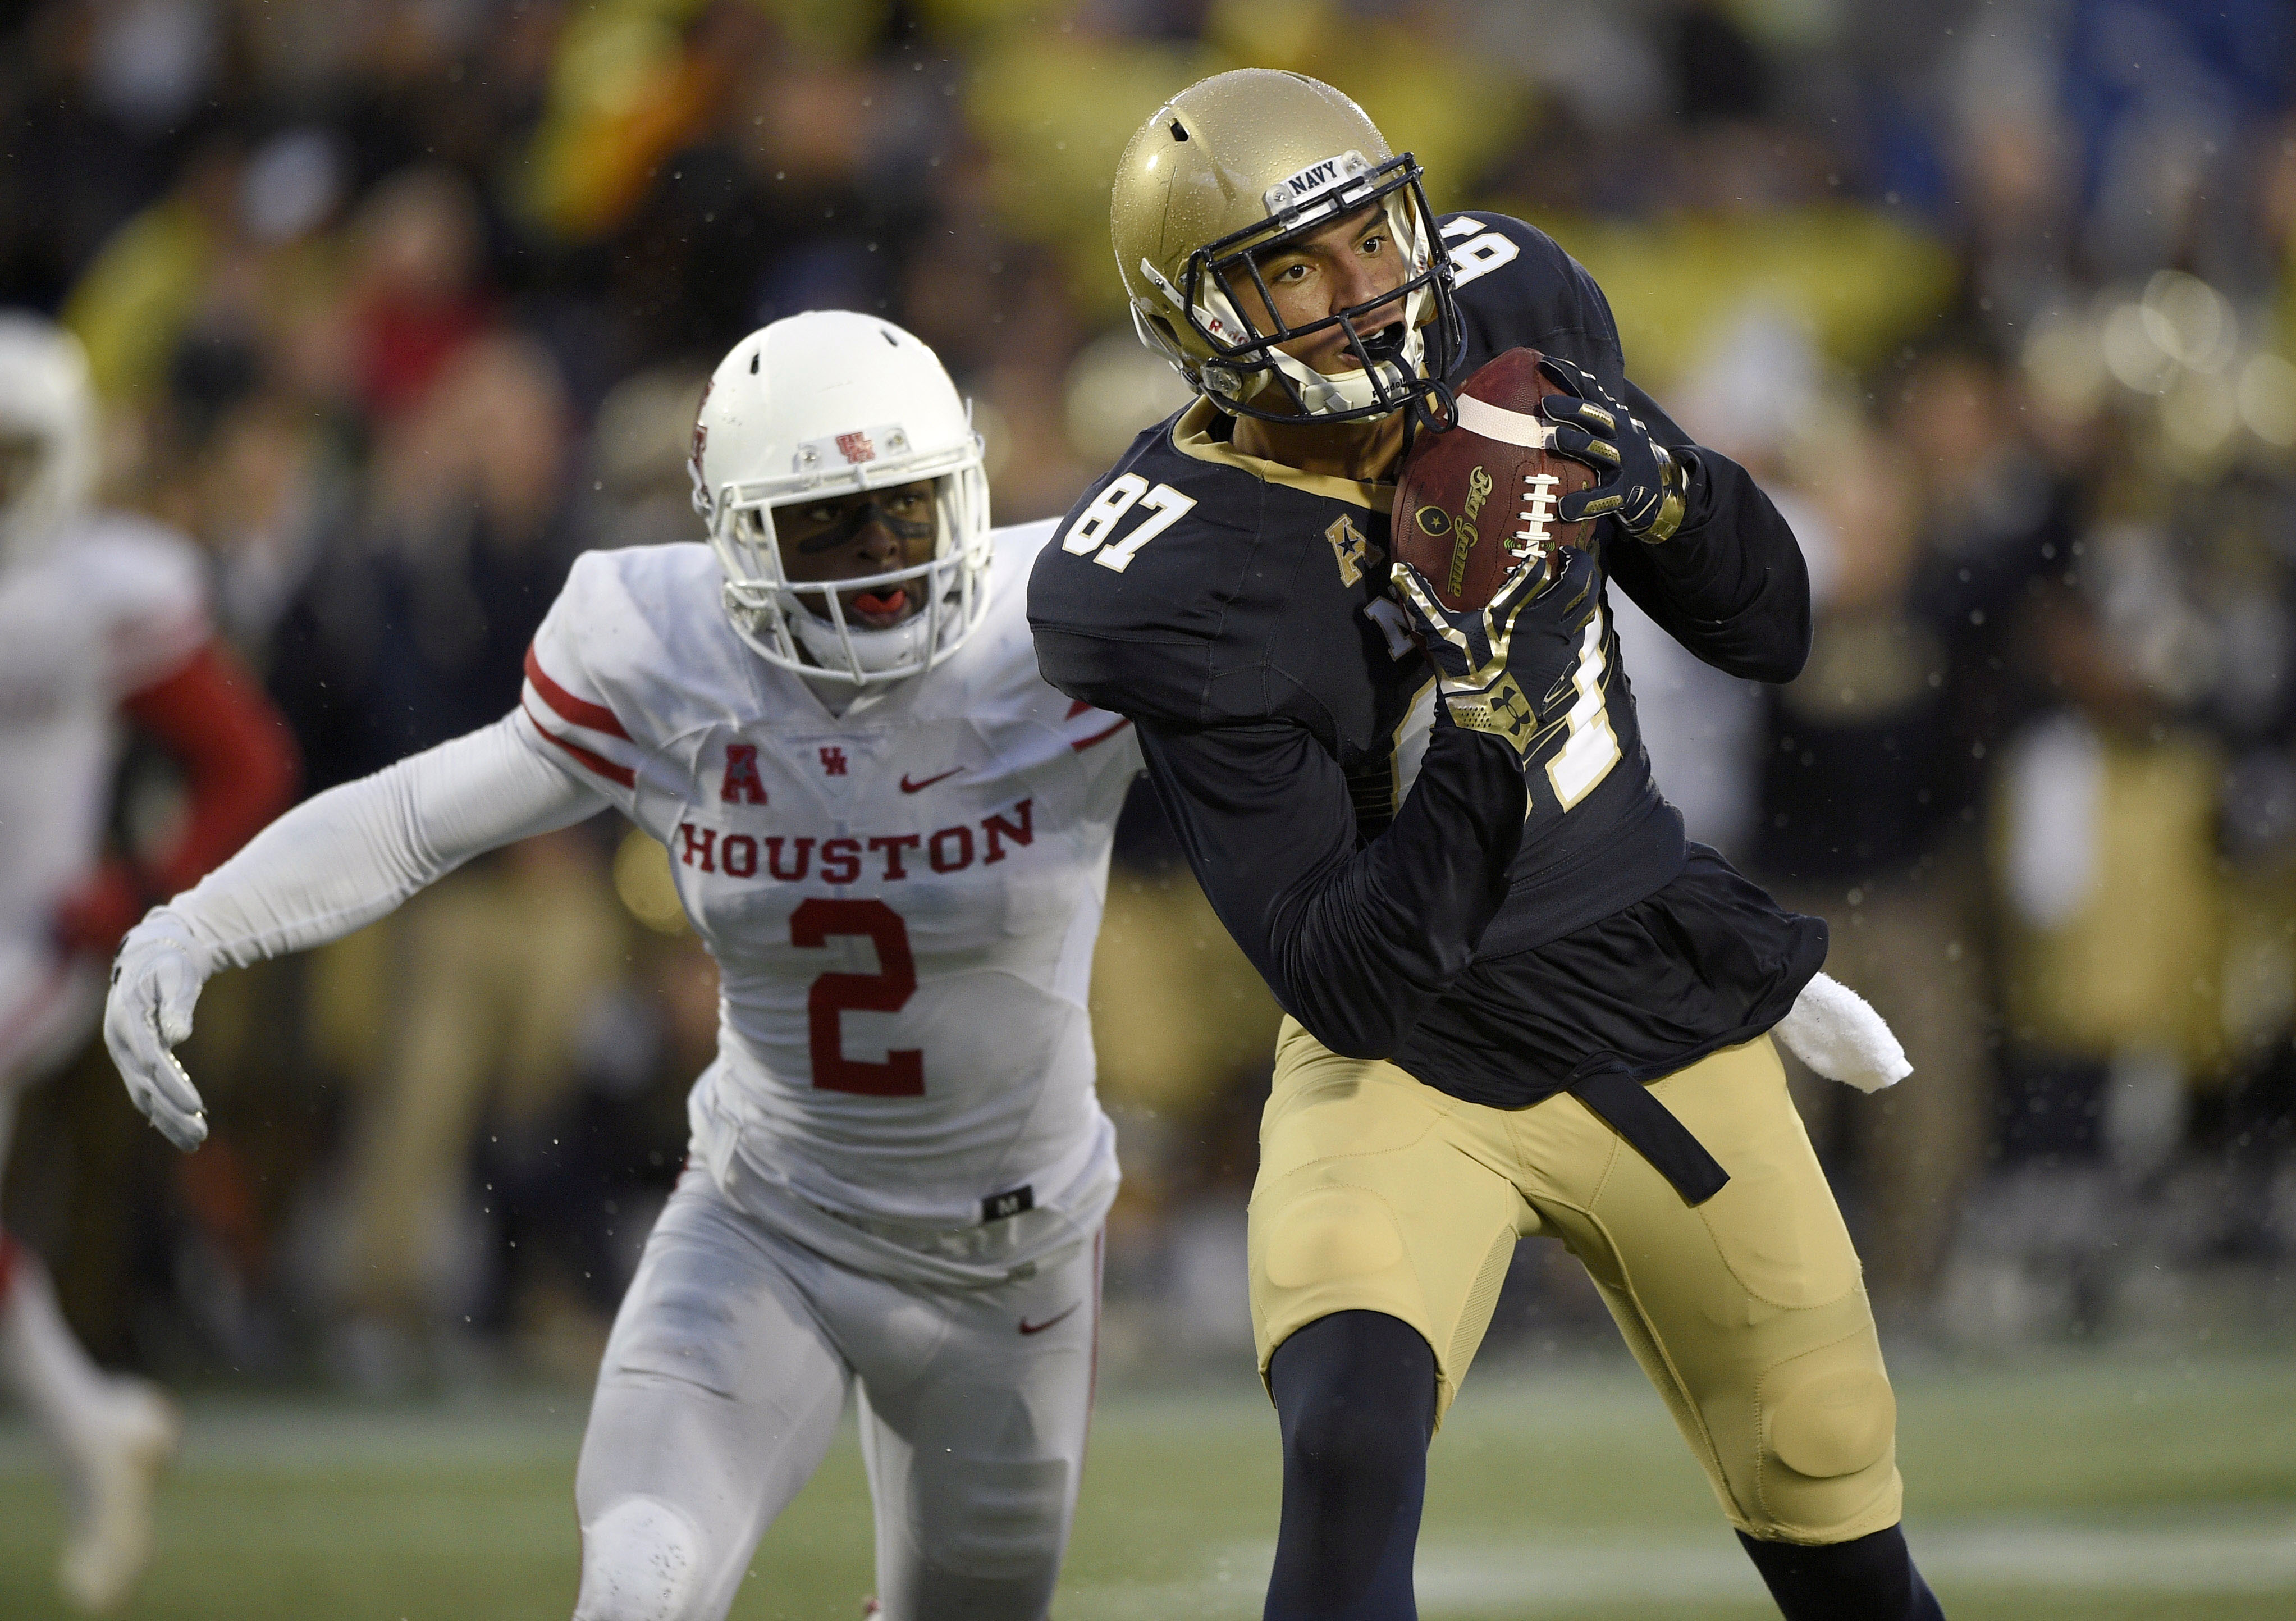 Navy wide receiver Brandon Colon (87) makes a catch as he runs for a touchdown against Houston safety Khalil Williams (2) during the second half of an NCAA football game, Saturday, Oct. 8, 2016, in Annapolis, Md. Navy won 46-40. (AP Photo/Nick Wass)